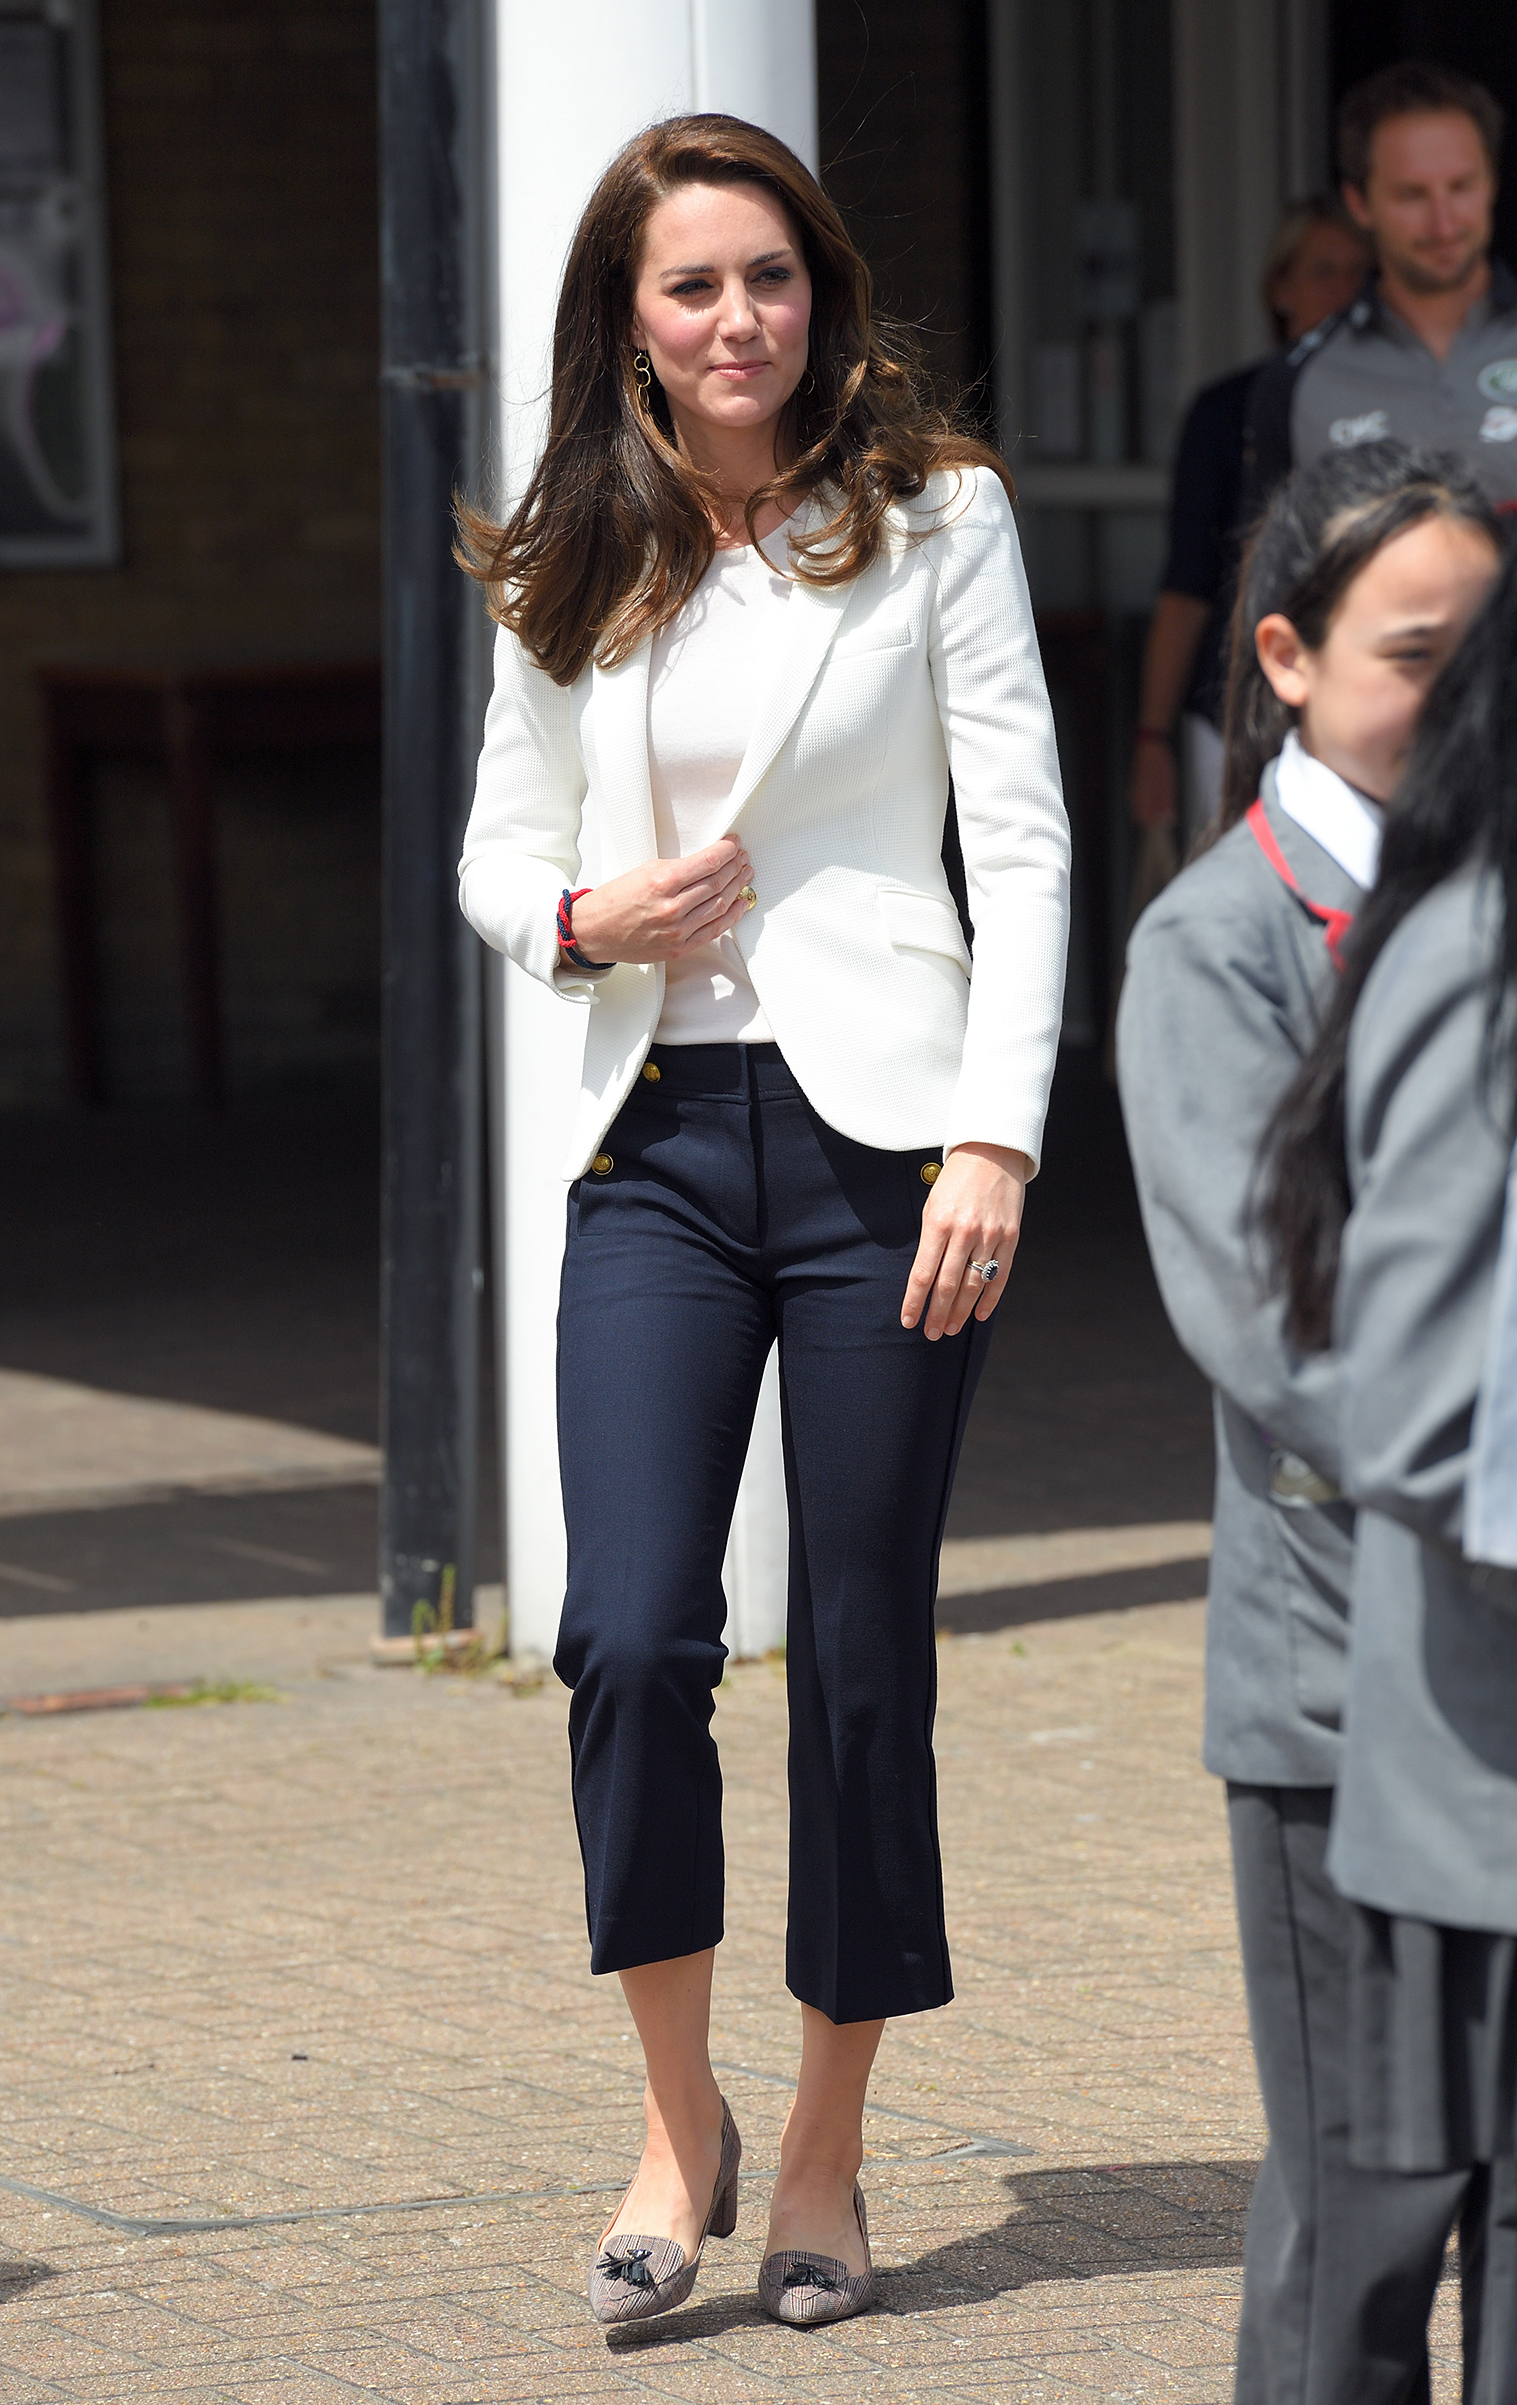 Catherine, Duchess of Cambridge, visits the 1851 Trust roadshow at Docklands Sailing and Watersports Center in London on June 16, 2017.  The Duchess of Cambridge is patron of the 1851 Trust.